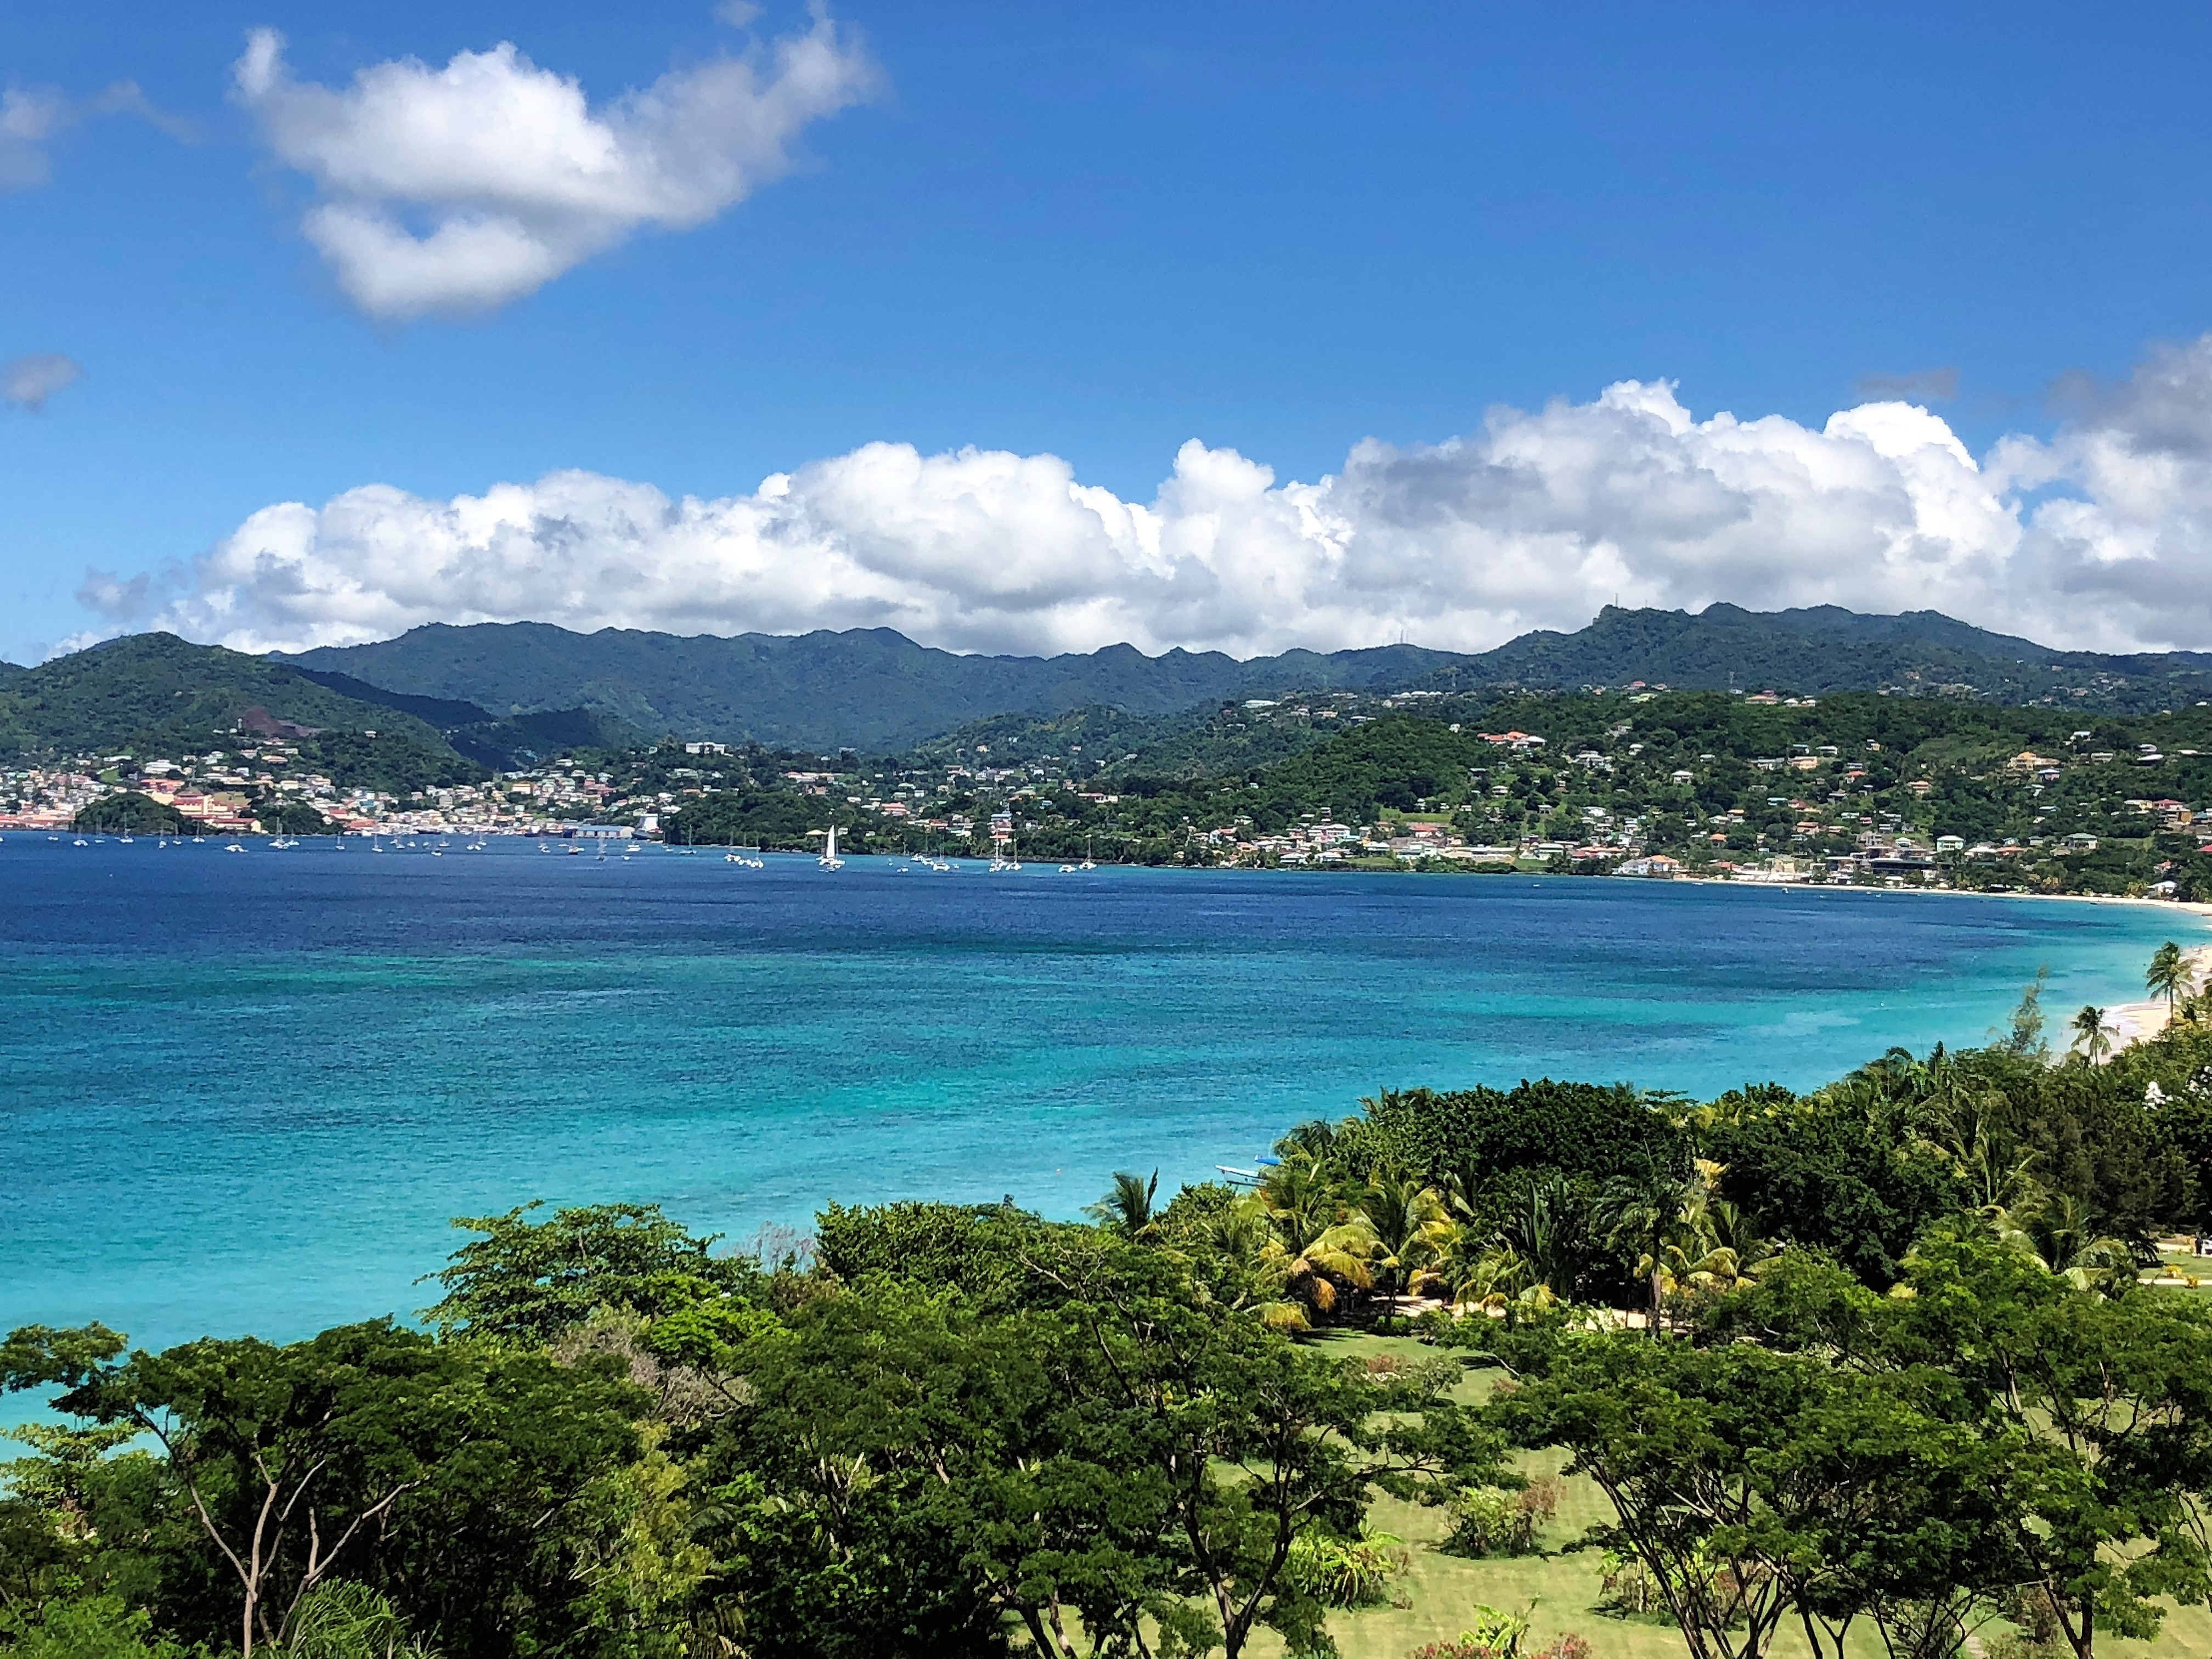 Sleep: Mount Cinnamon in Grenada Charms with Water Views and Banana Bread, Too